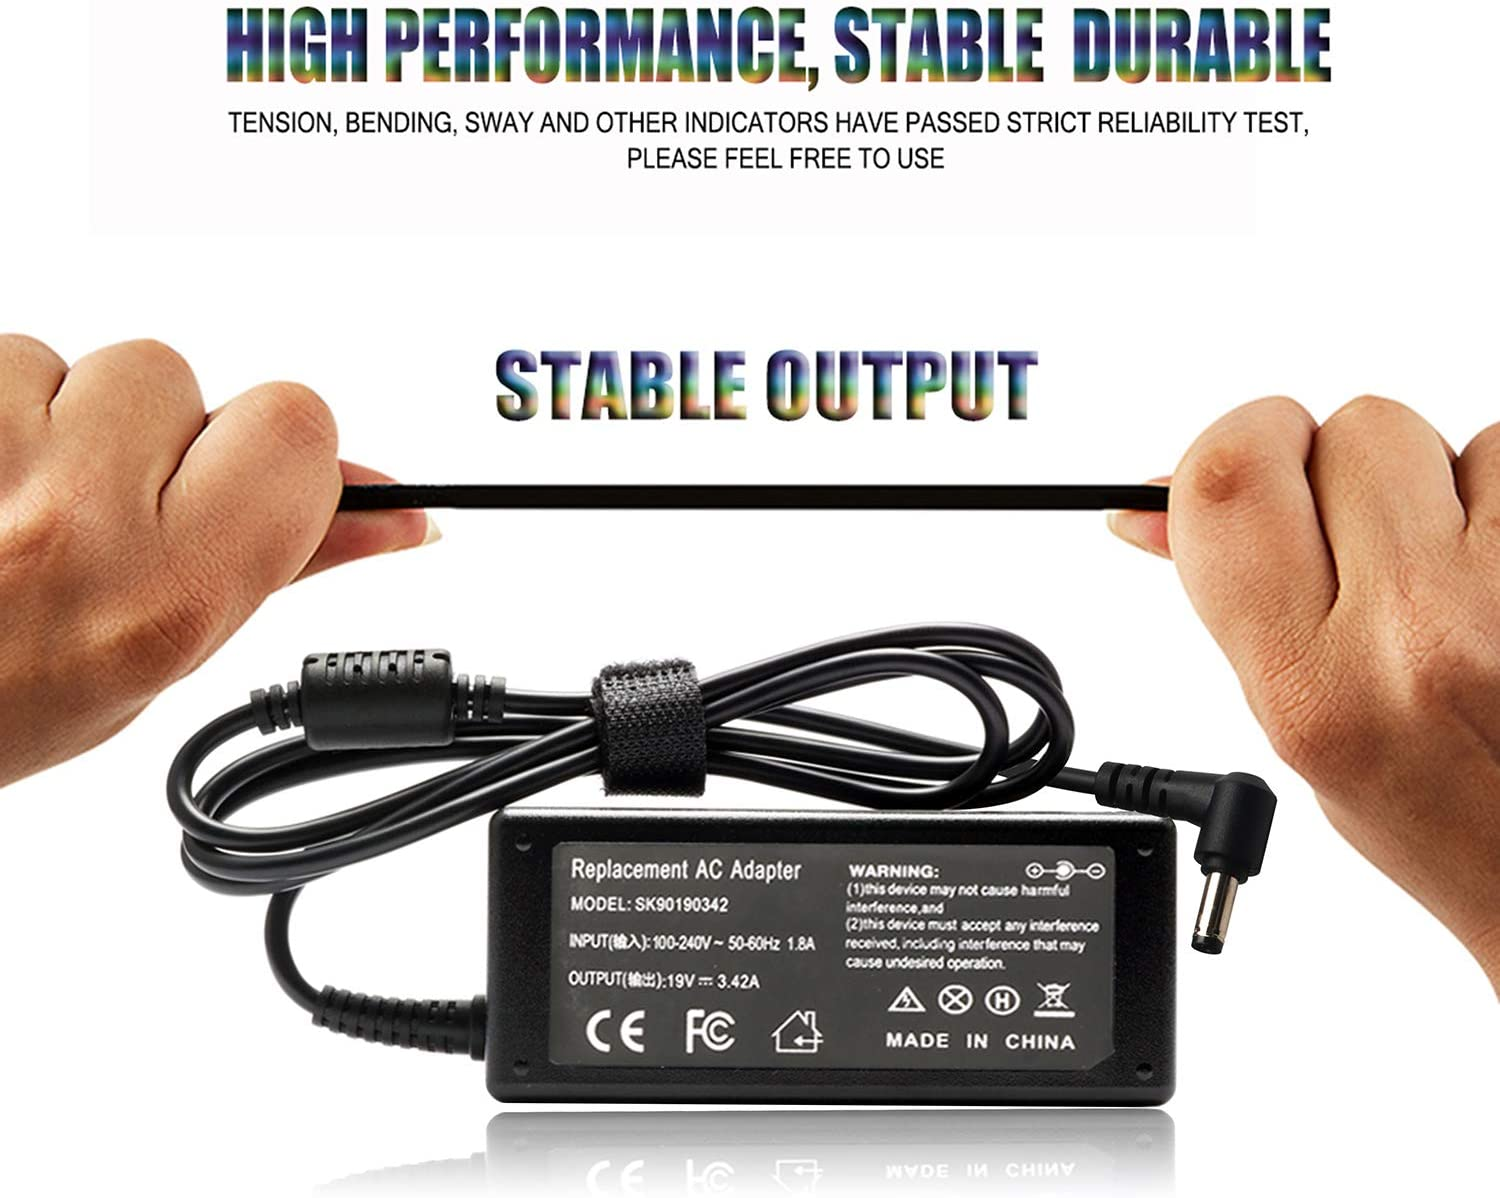 19V AC DC Adapter Charger for JBL Boombox Portable Bluetooth Waterproof Speaker Replacement Power Supply Cord JBL Xtreme Xtreme 2 65W Charger Cable